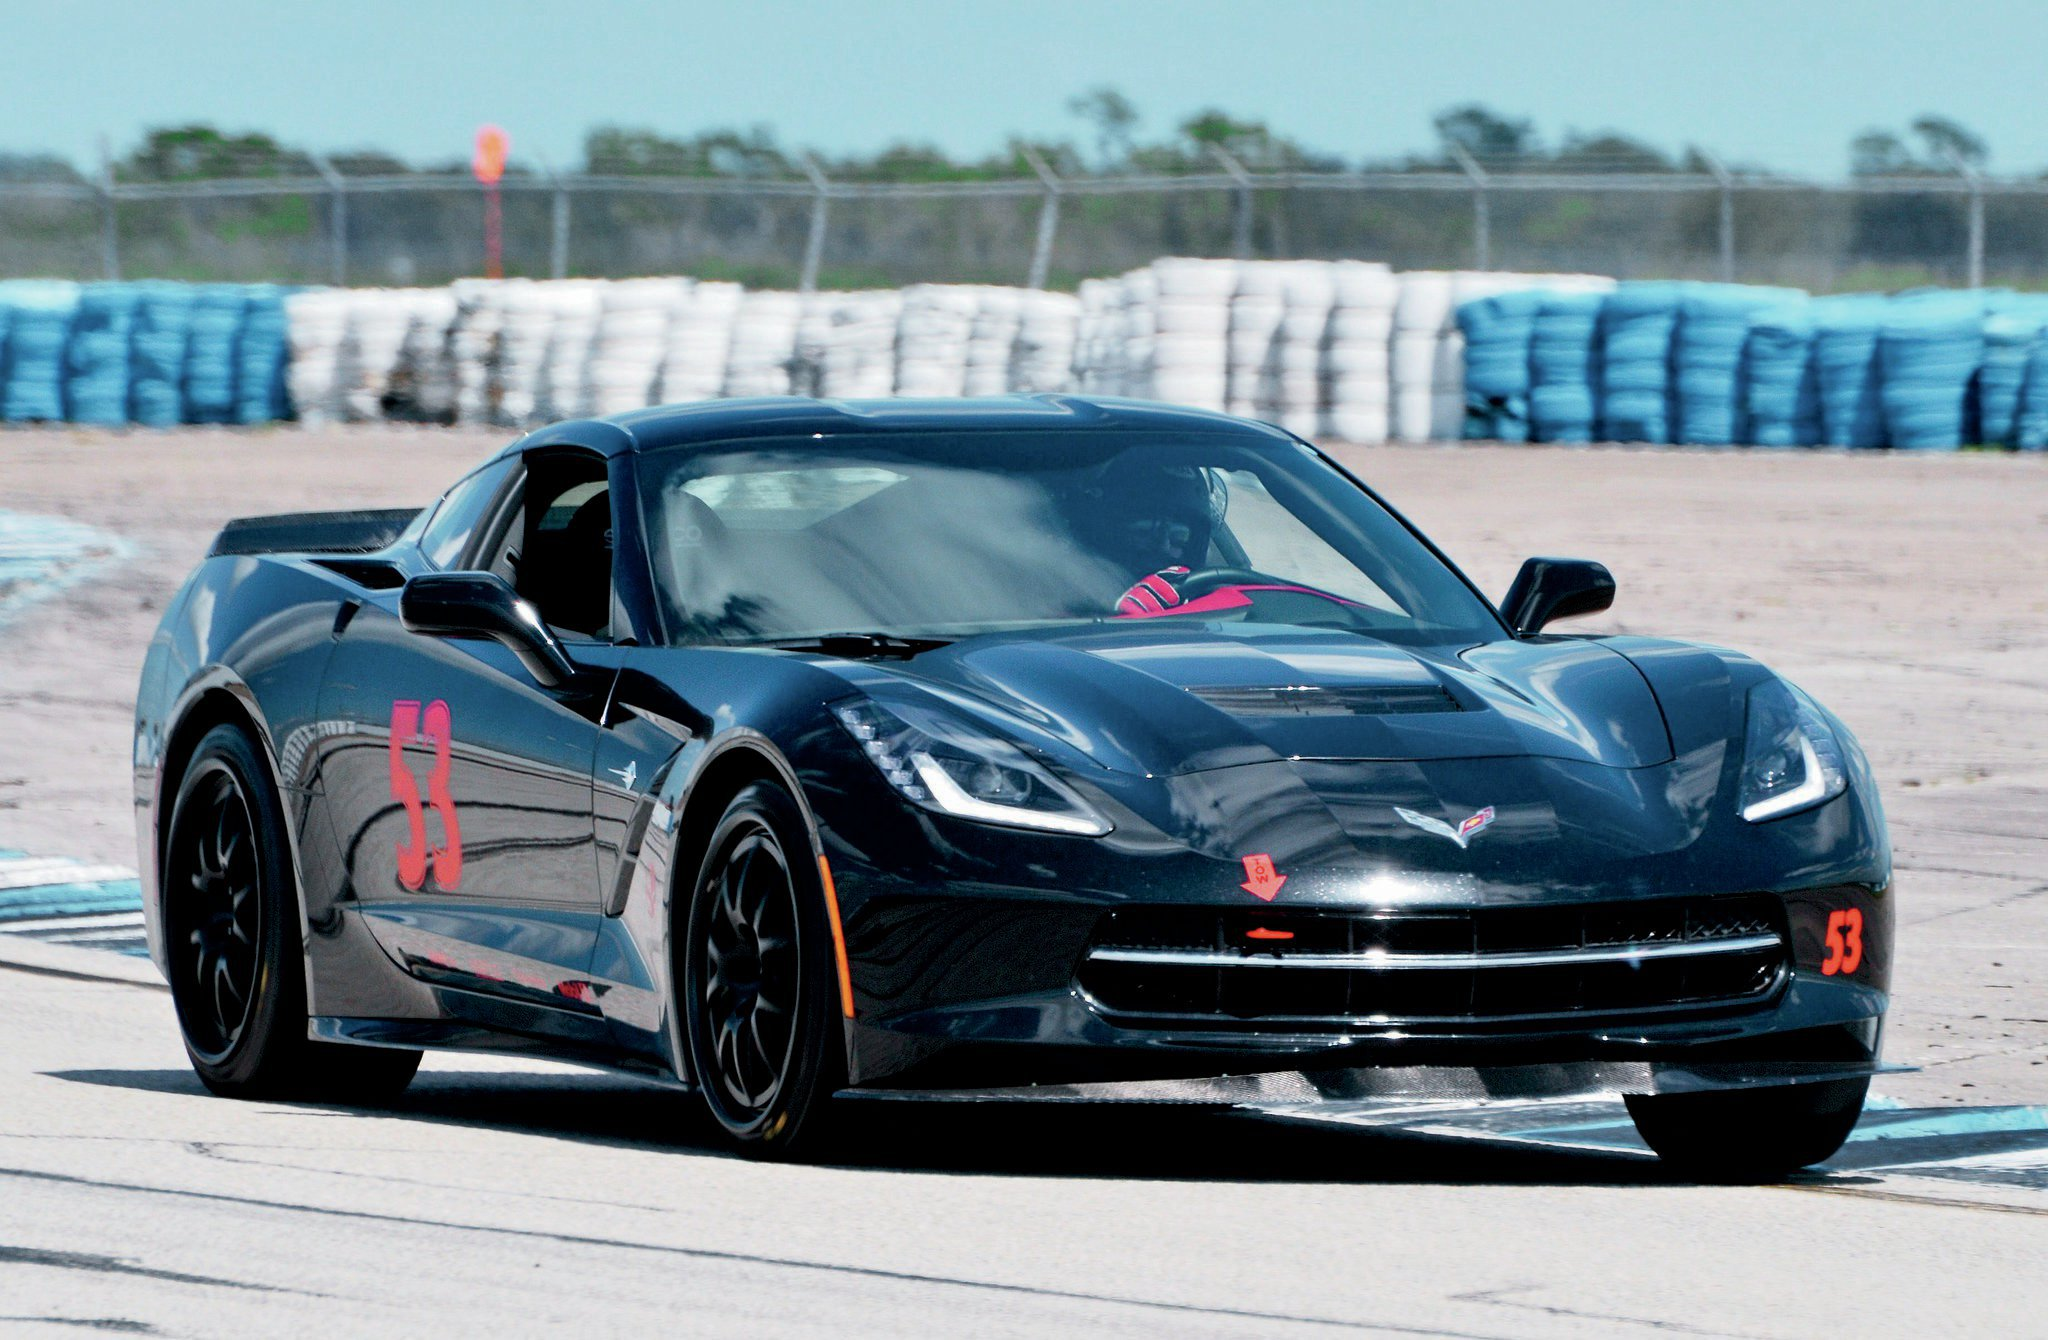 How To Prep Your New C7 Corvette For Serious Track Duty